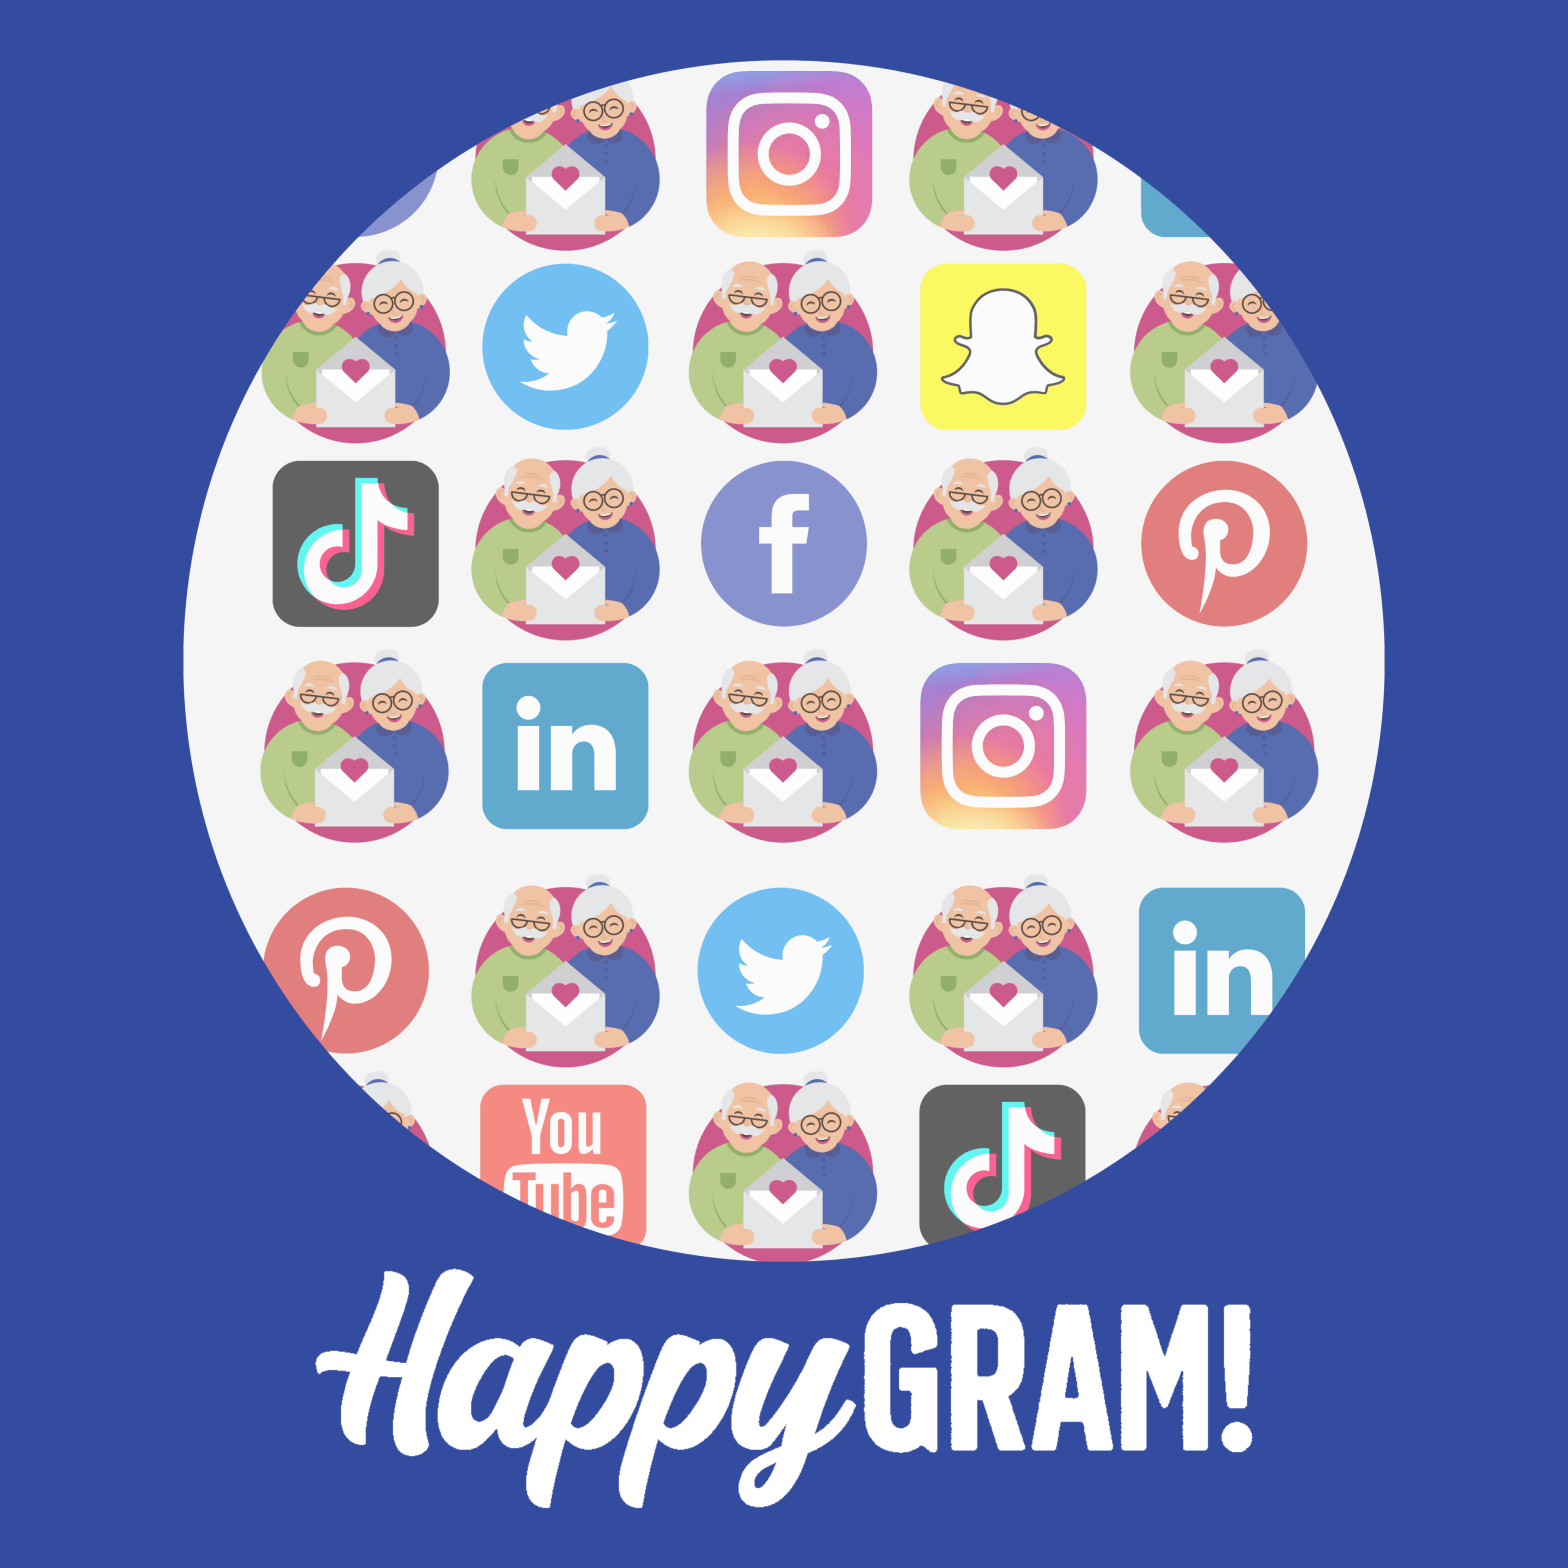 HappyGram and Social Media